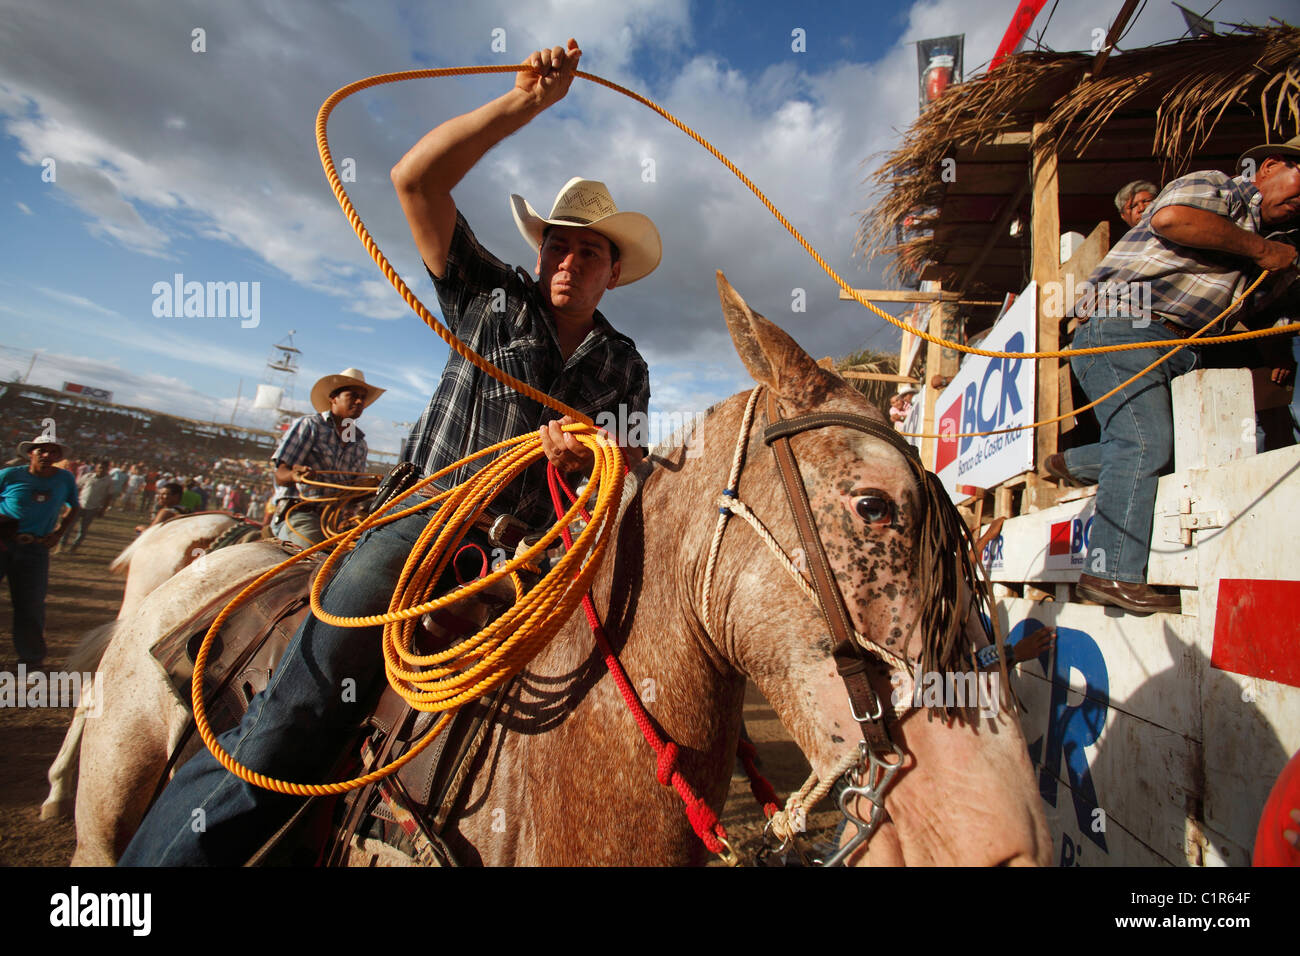 Cowboy at a bull riding event as part of a civic festival in Liberia, Costa Rica - Stock Image